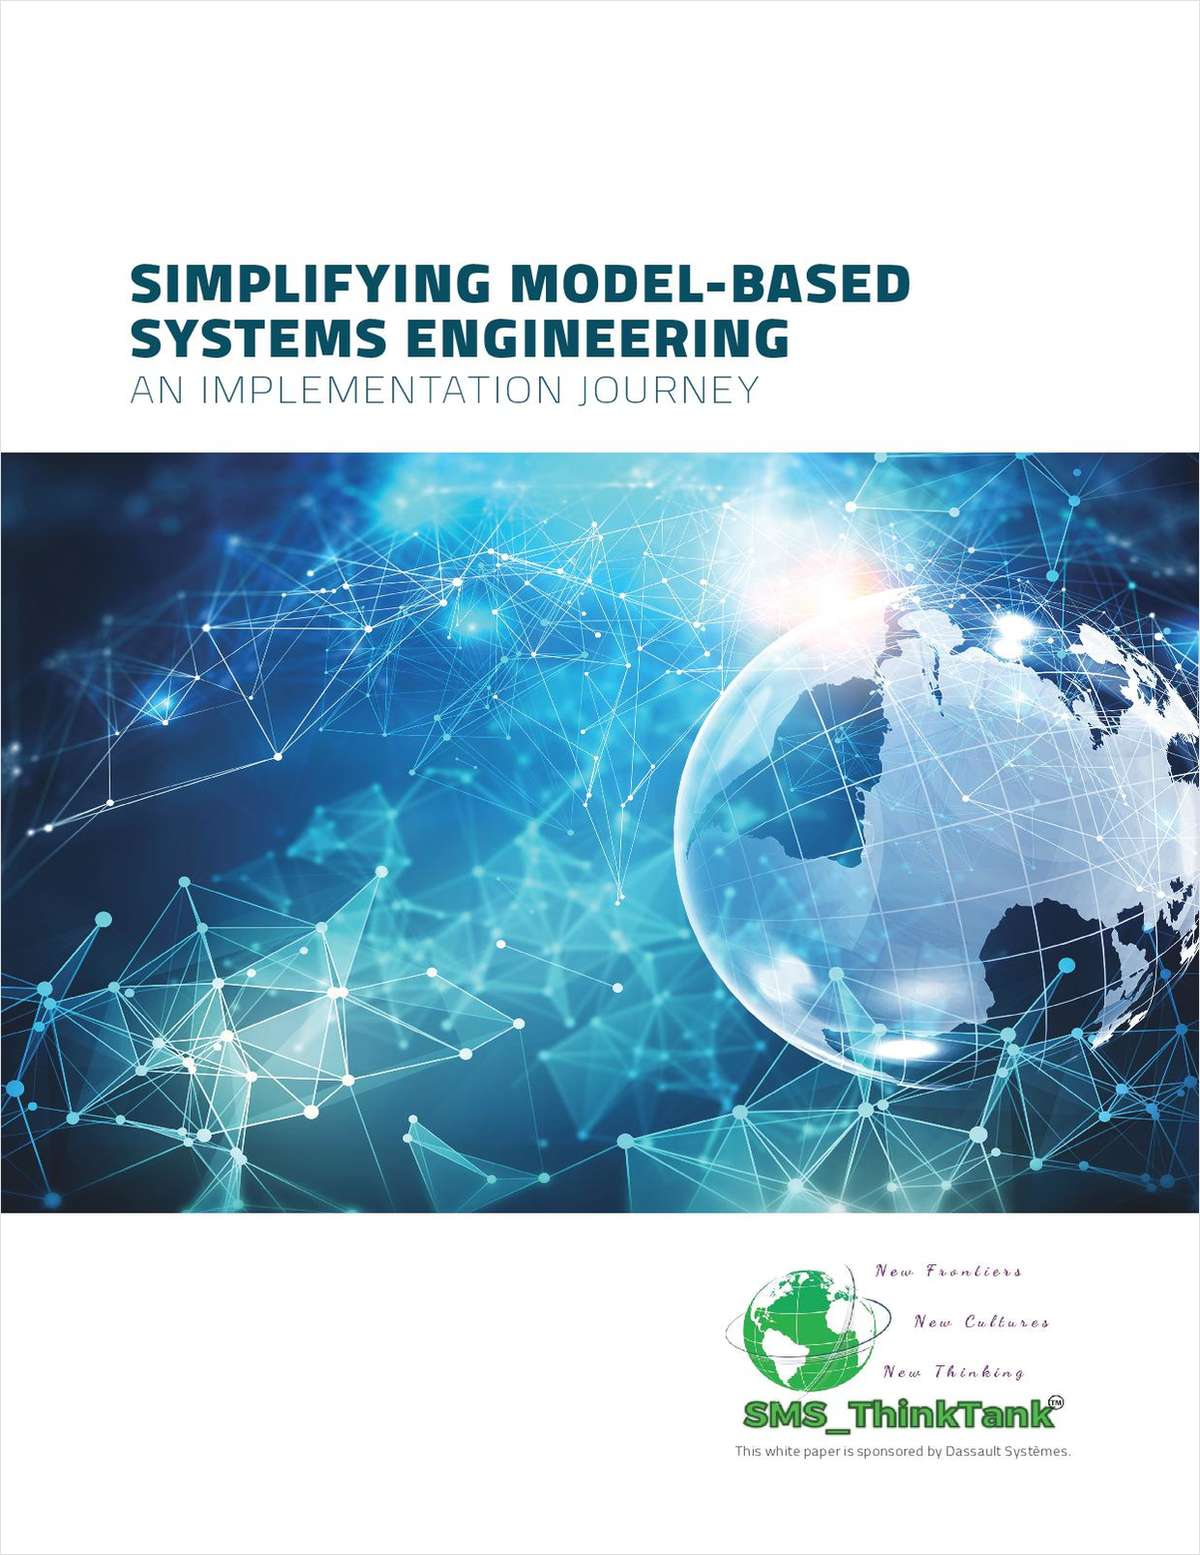 Simplifying Model-Based Systems Engineering: An Implementation Journey